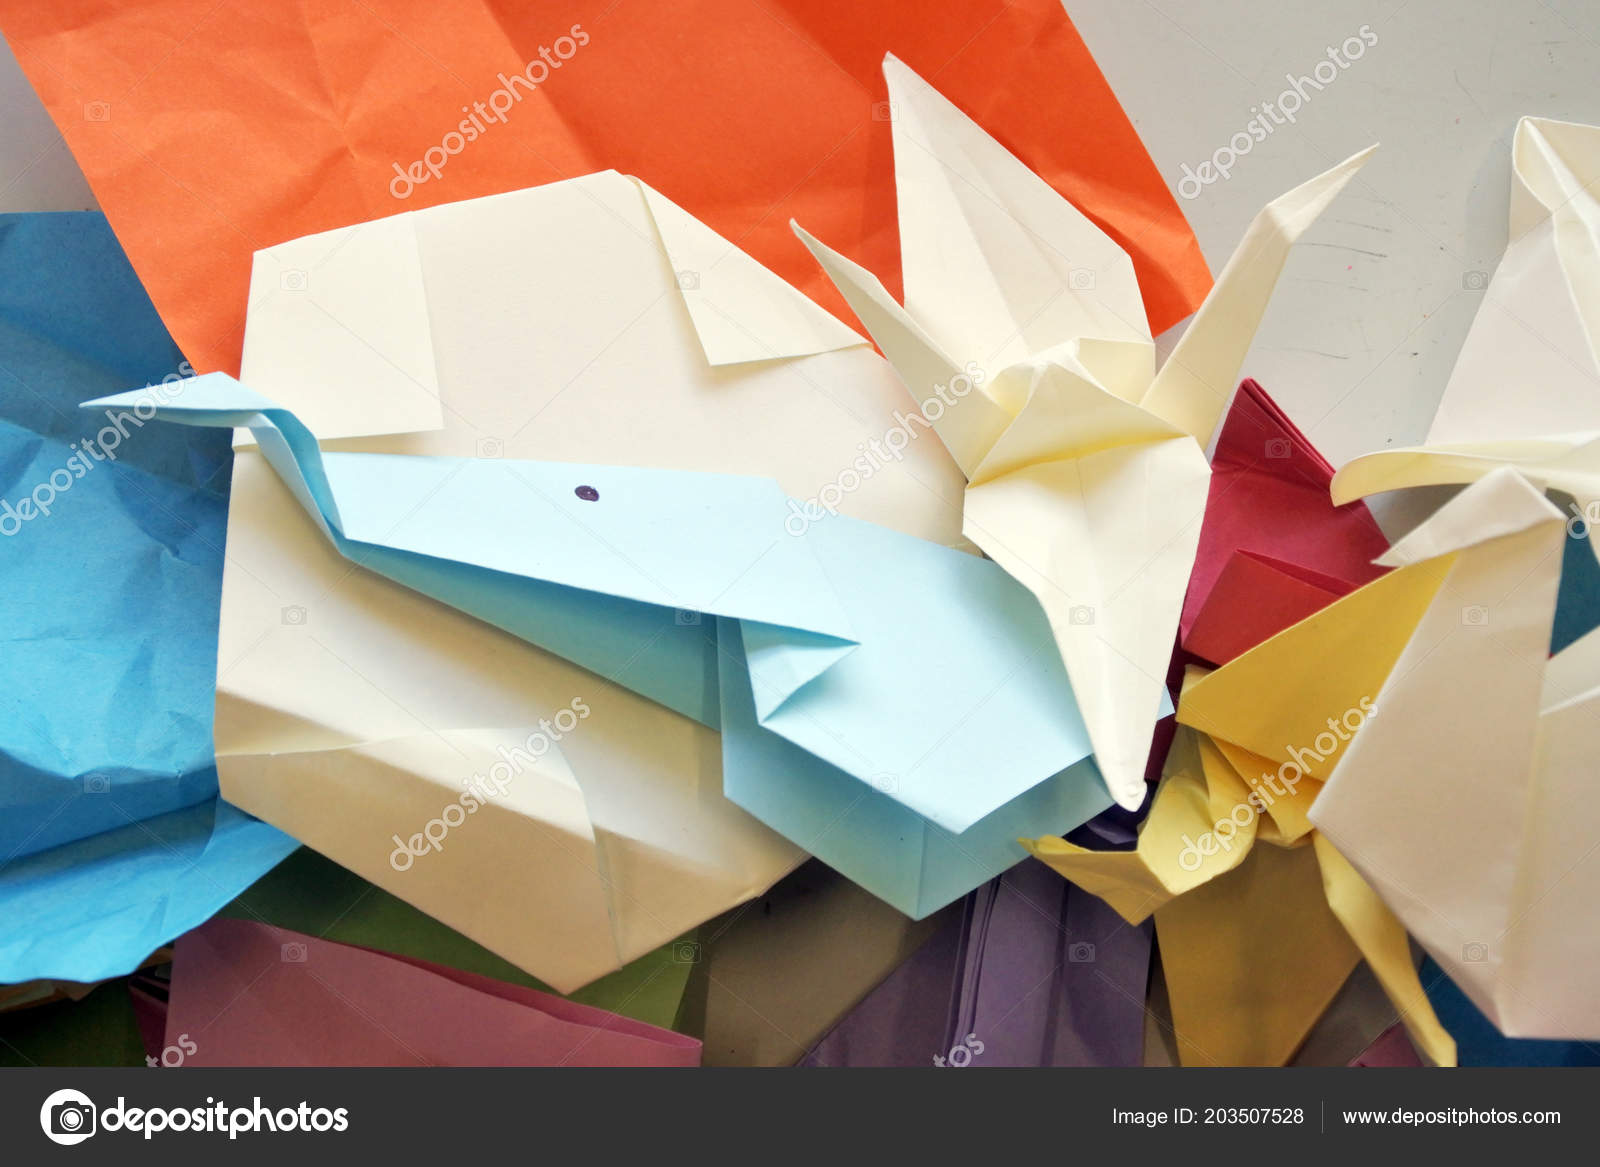 Origami hand drawn vector set, watercolor style, folder paper art color  animals, birds, boat, plane shapes isolated on white background Stock  Vector Image & Art - Alamy | 1167x1600